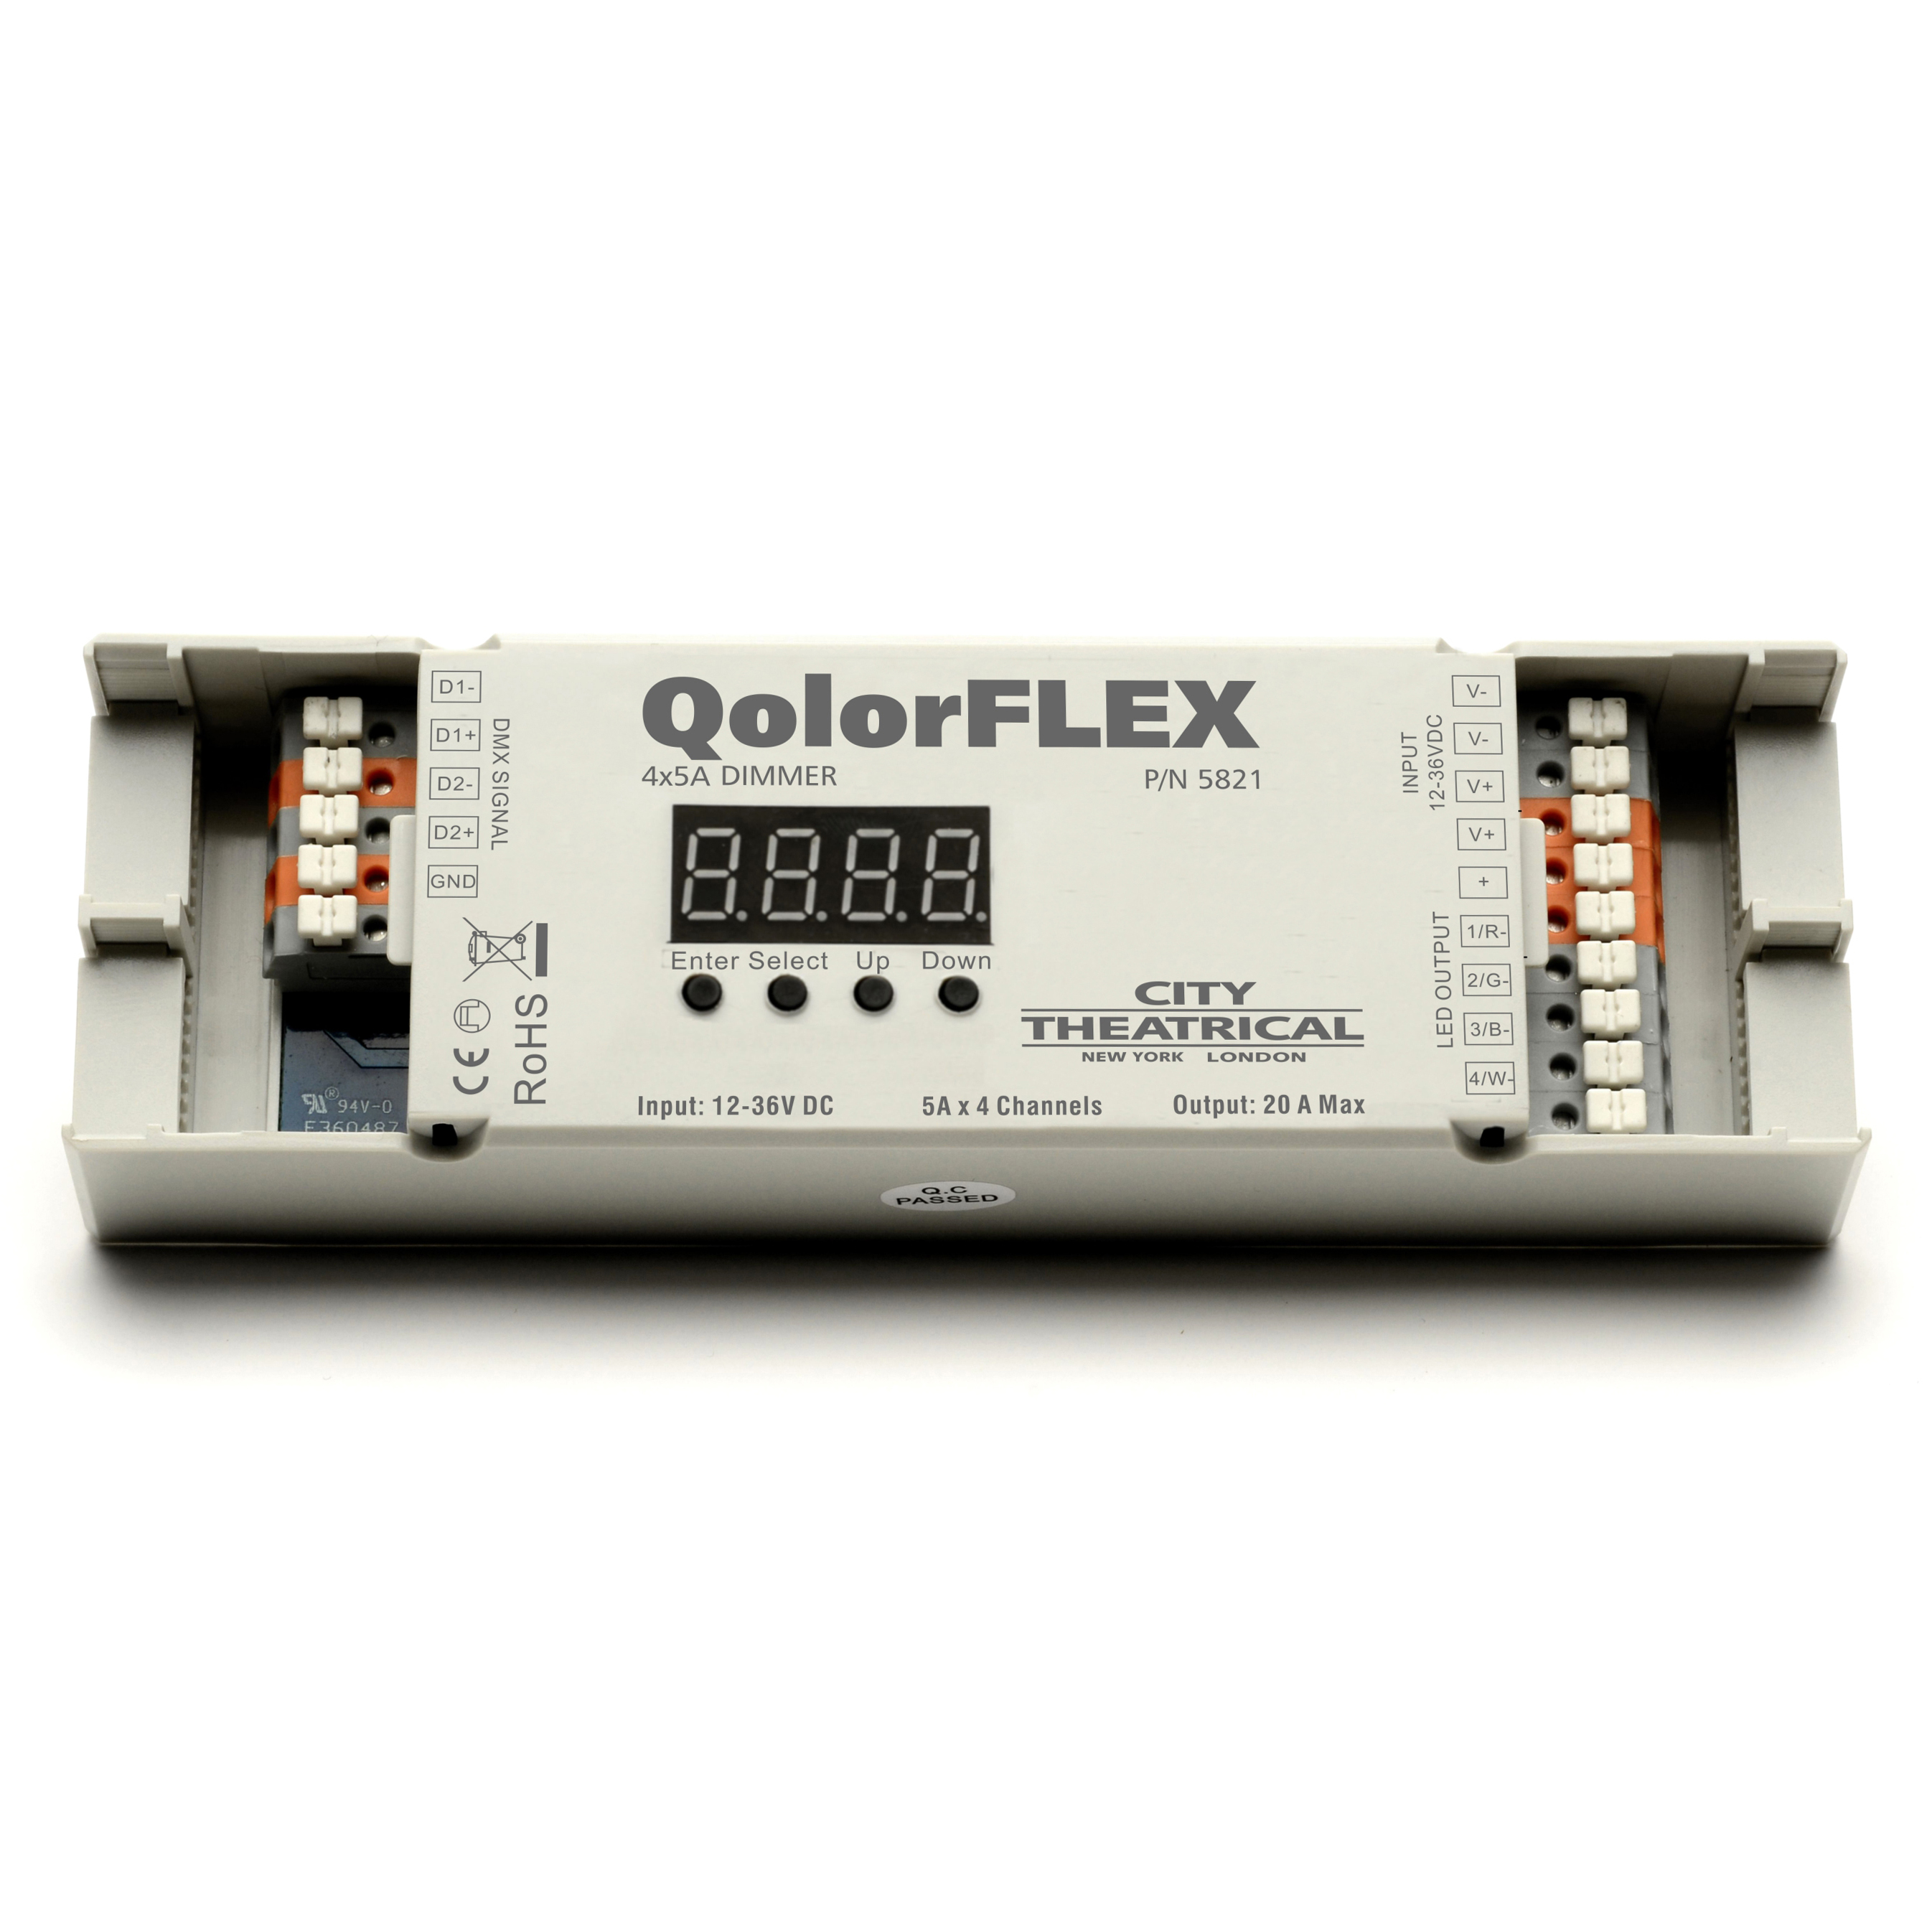 Qolorflex 4x5a Dimmer Instrument Cluster Wiring Diagram Click To Enlarge Image